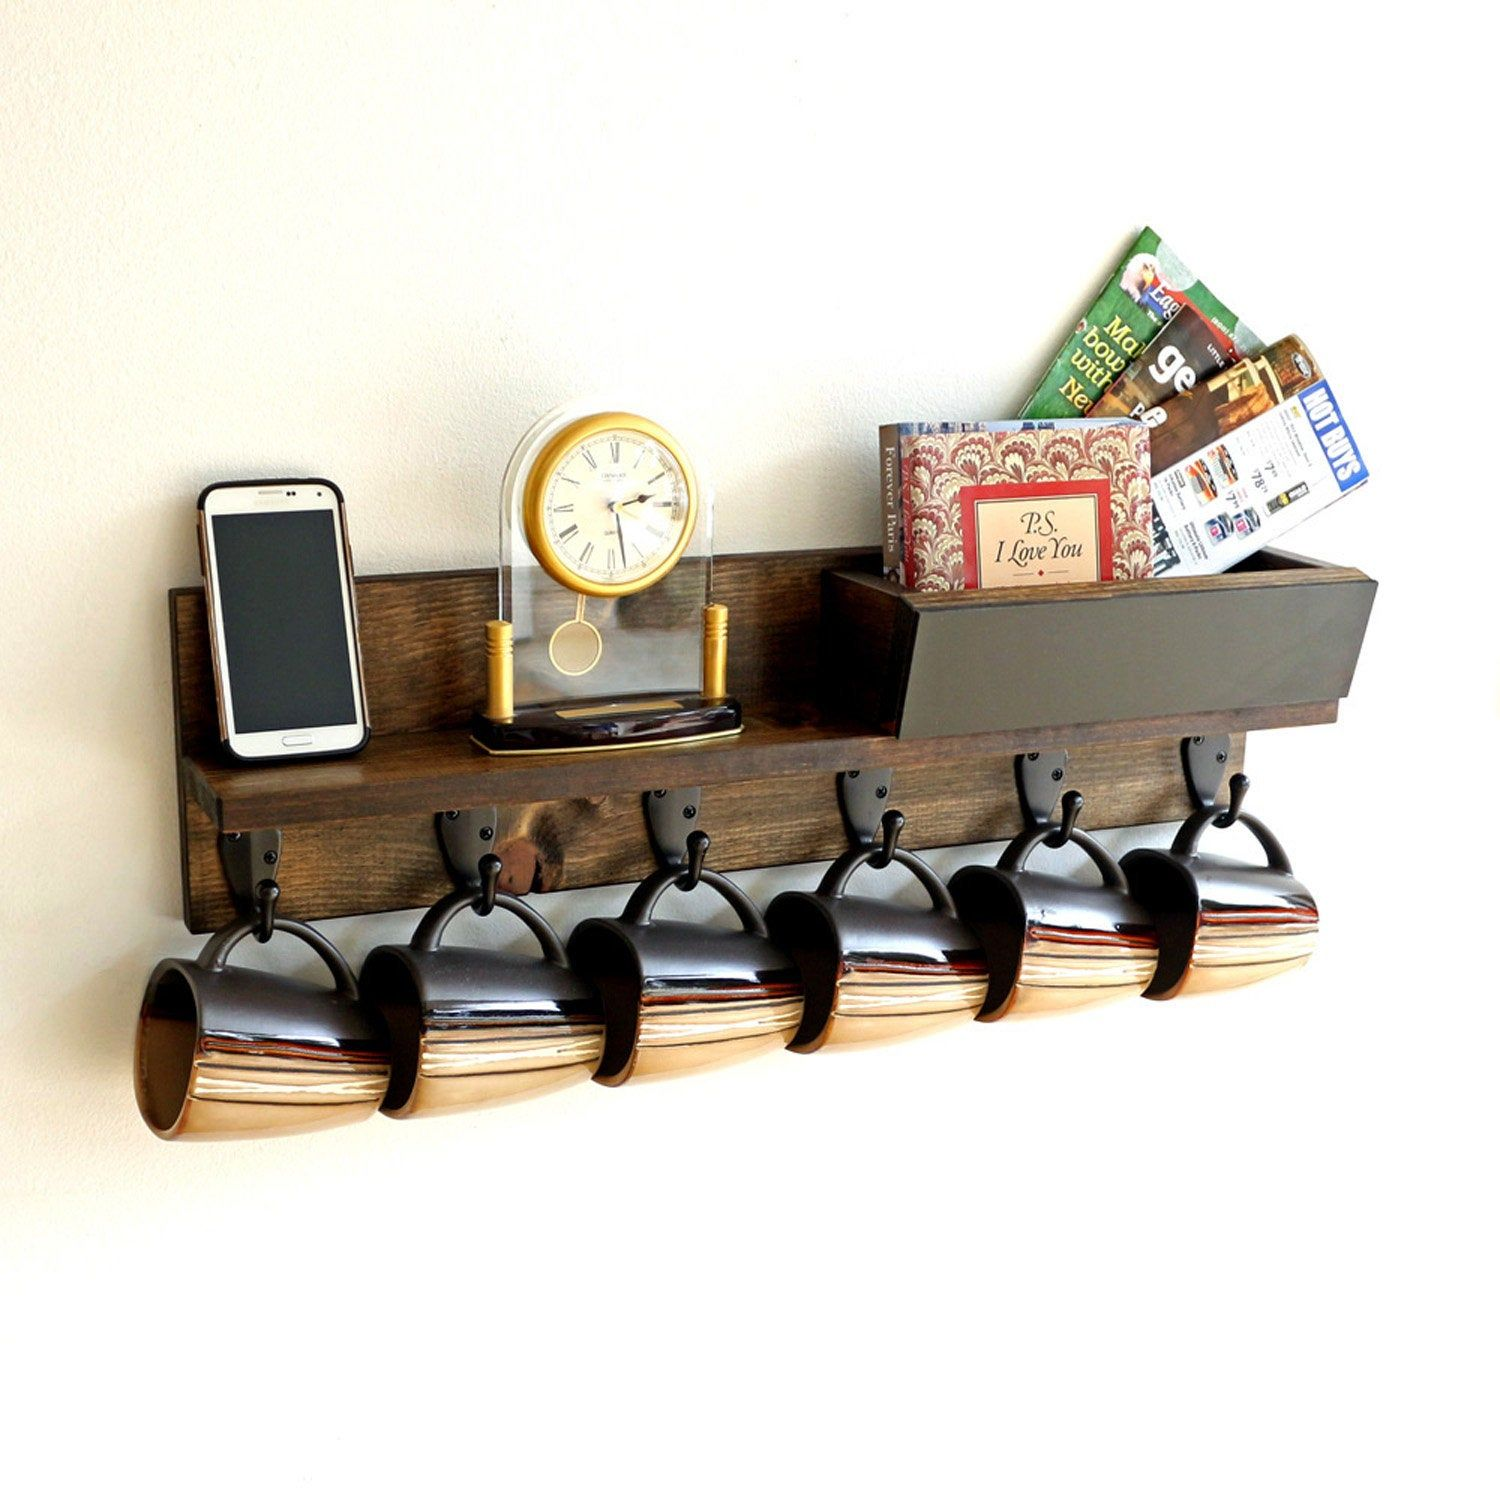 Rustic Wood Coffee Mug Rack Wall Mounted Coffee Cup